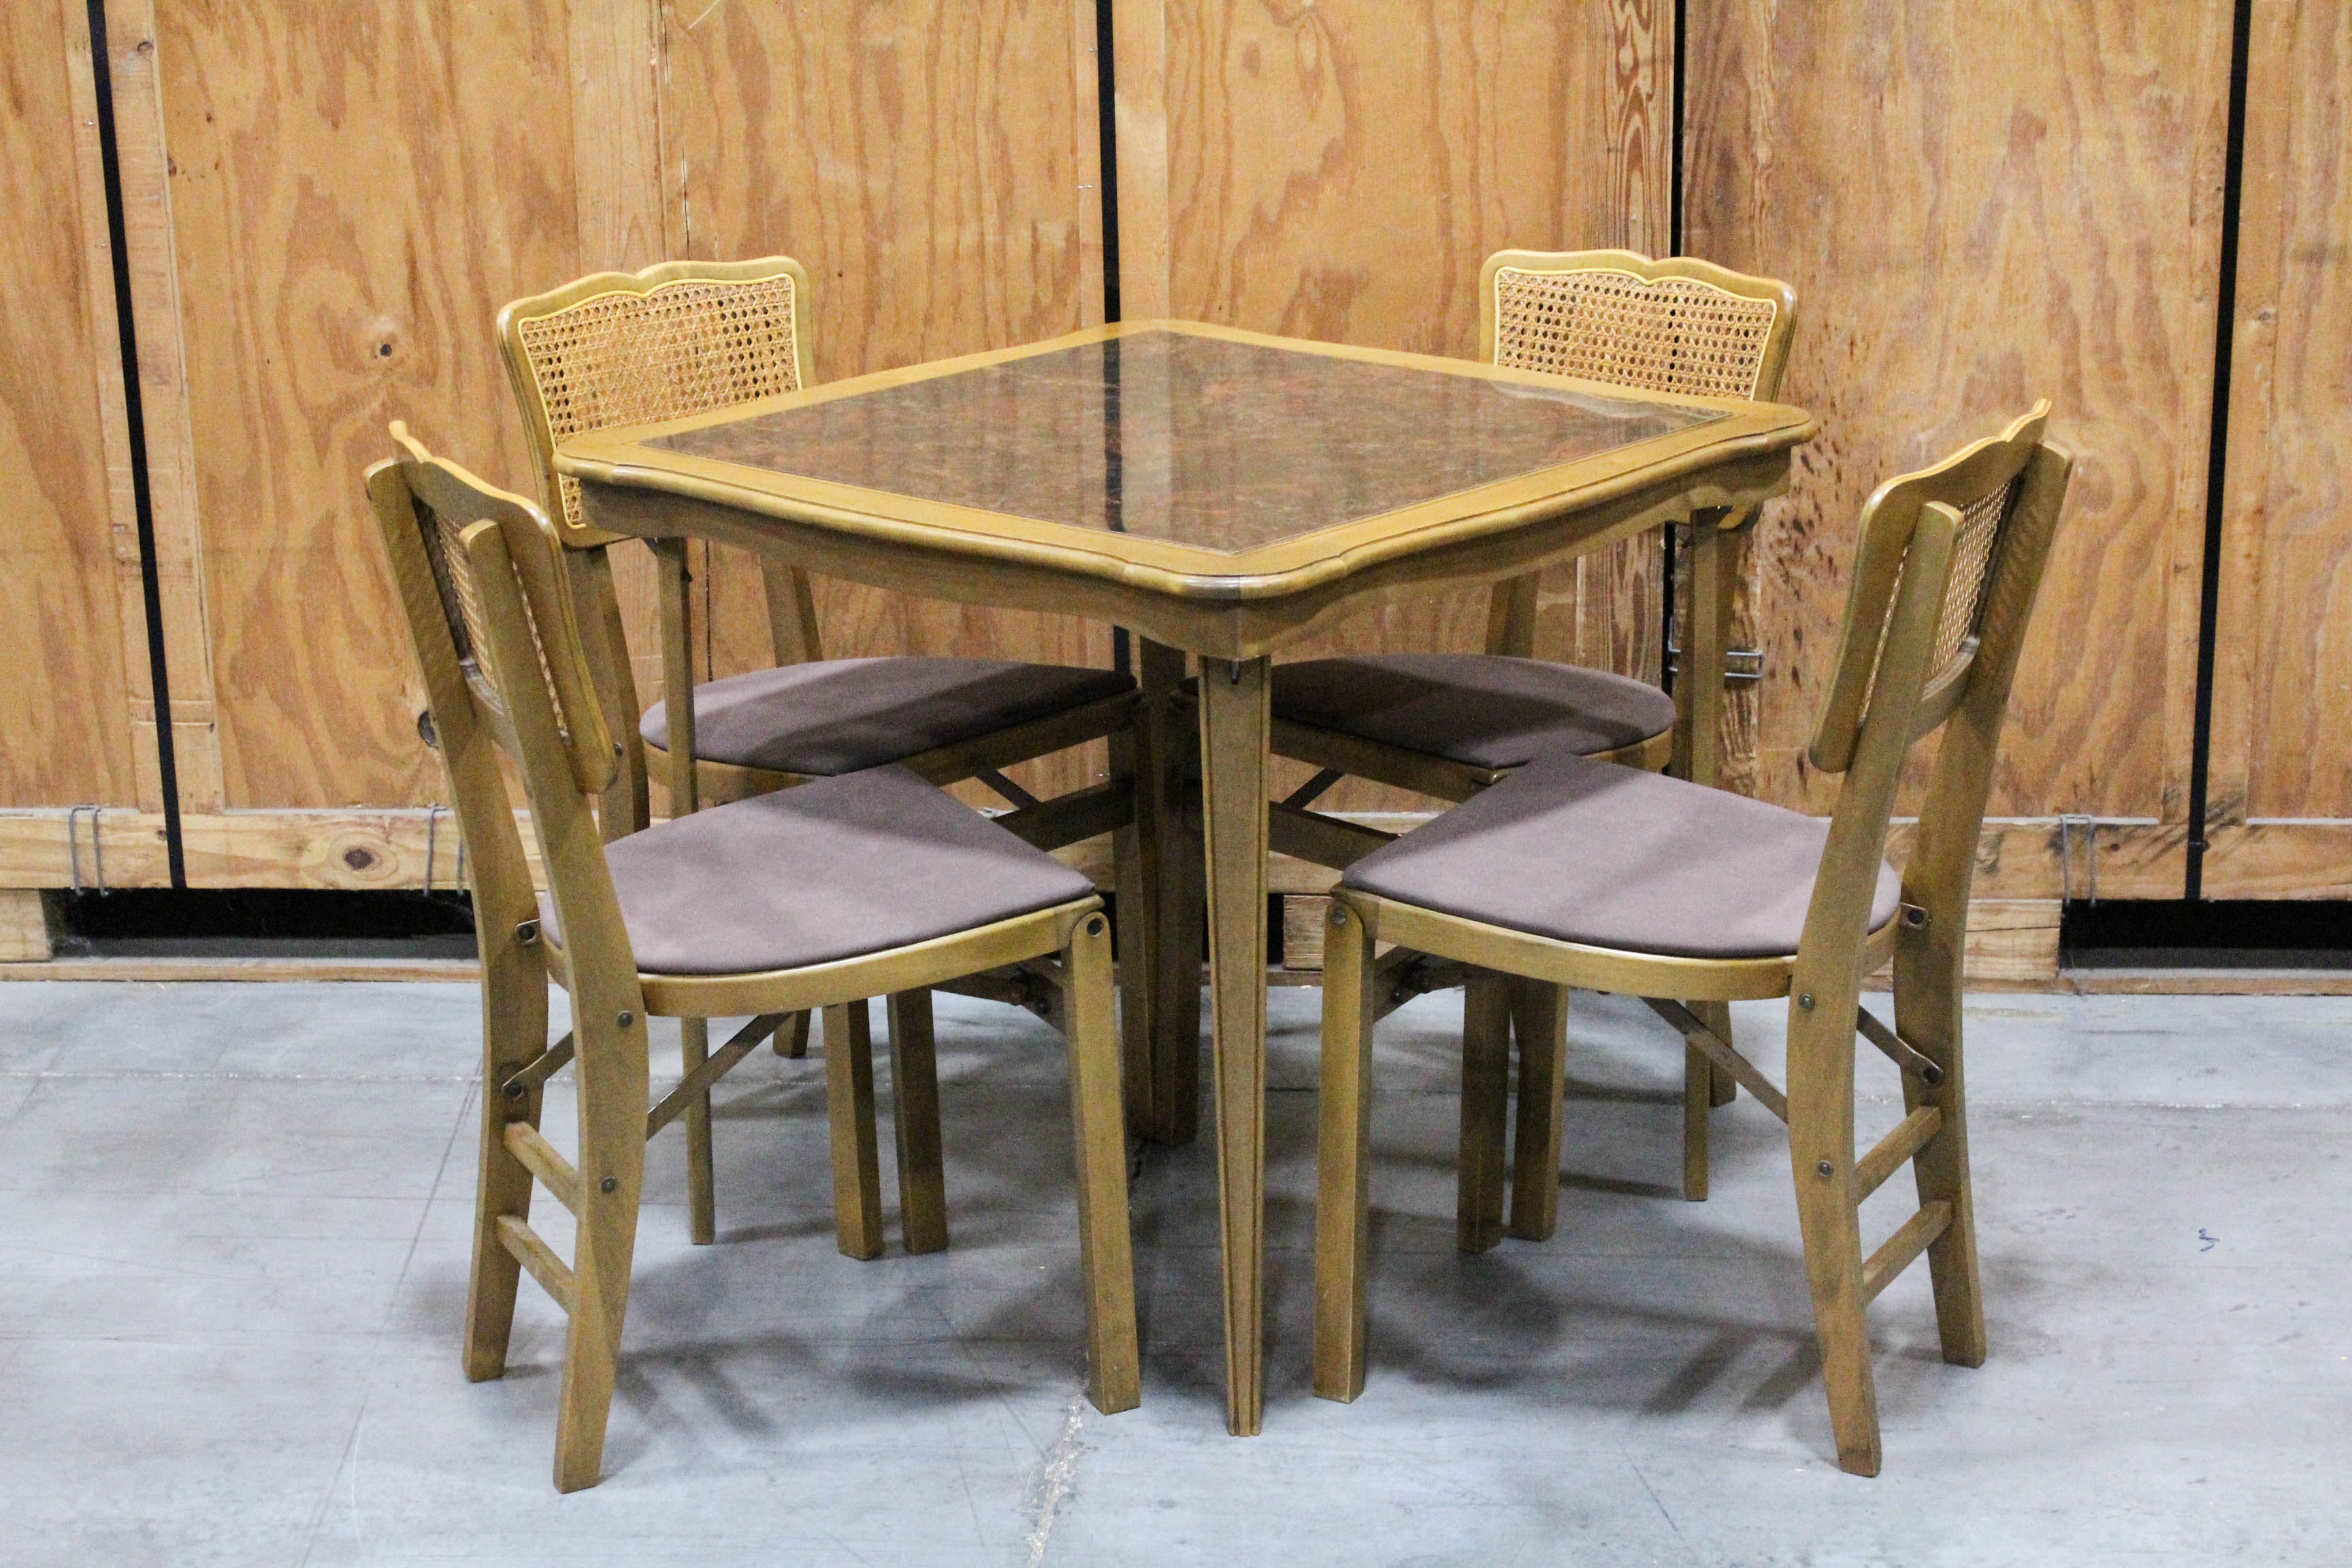 Vintage Stakmore Folding Table And Chairs ...